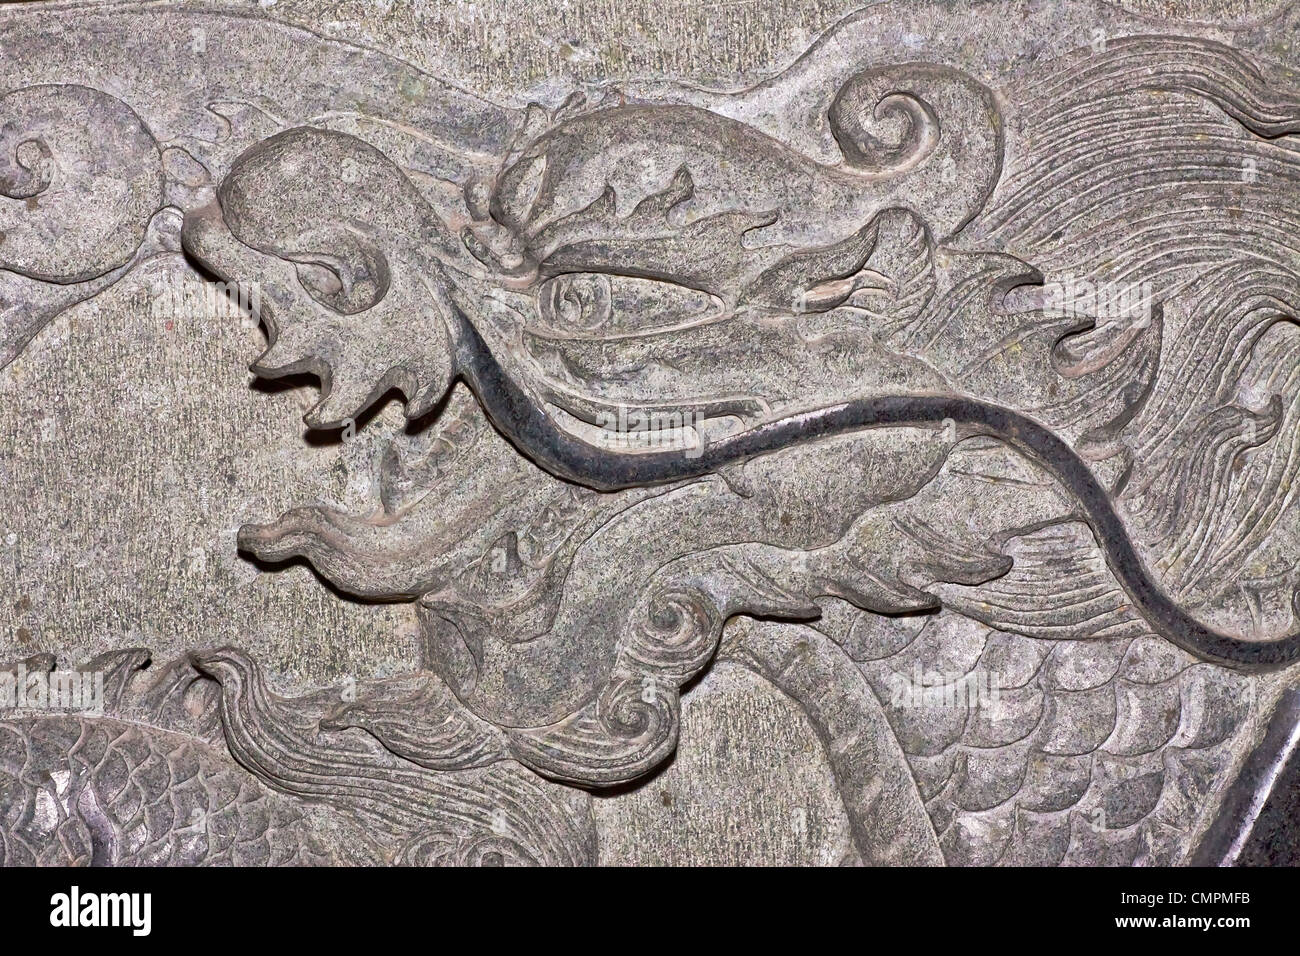 Dragon carve on wall expressing power and status in ancient China. - Stock Image